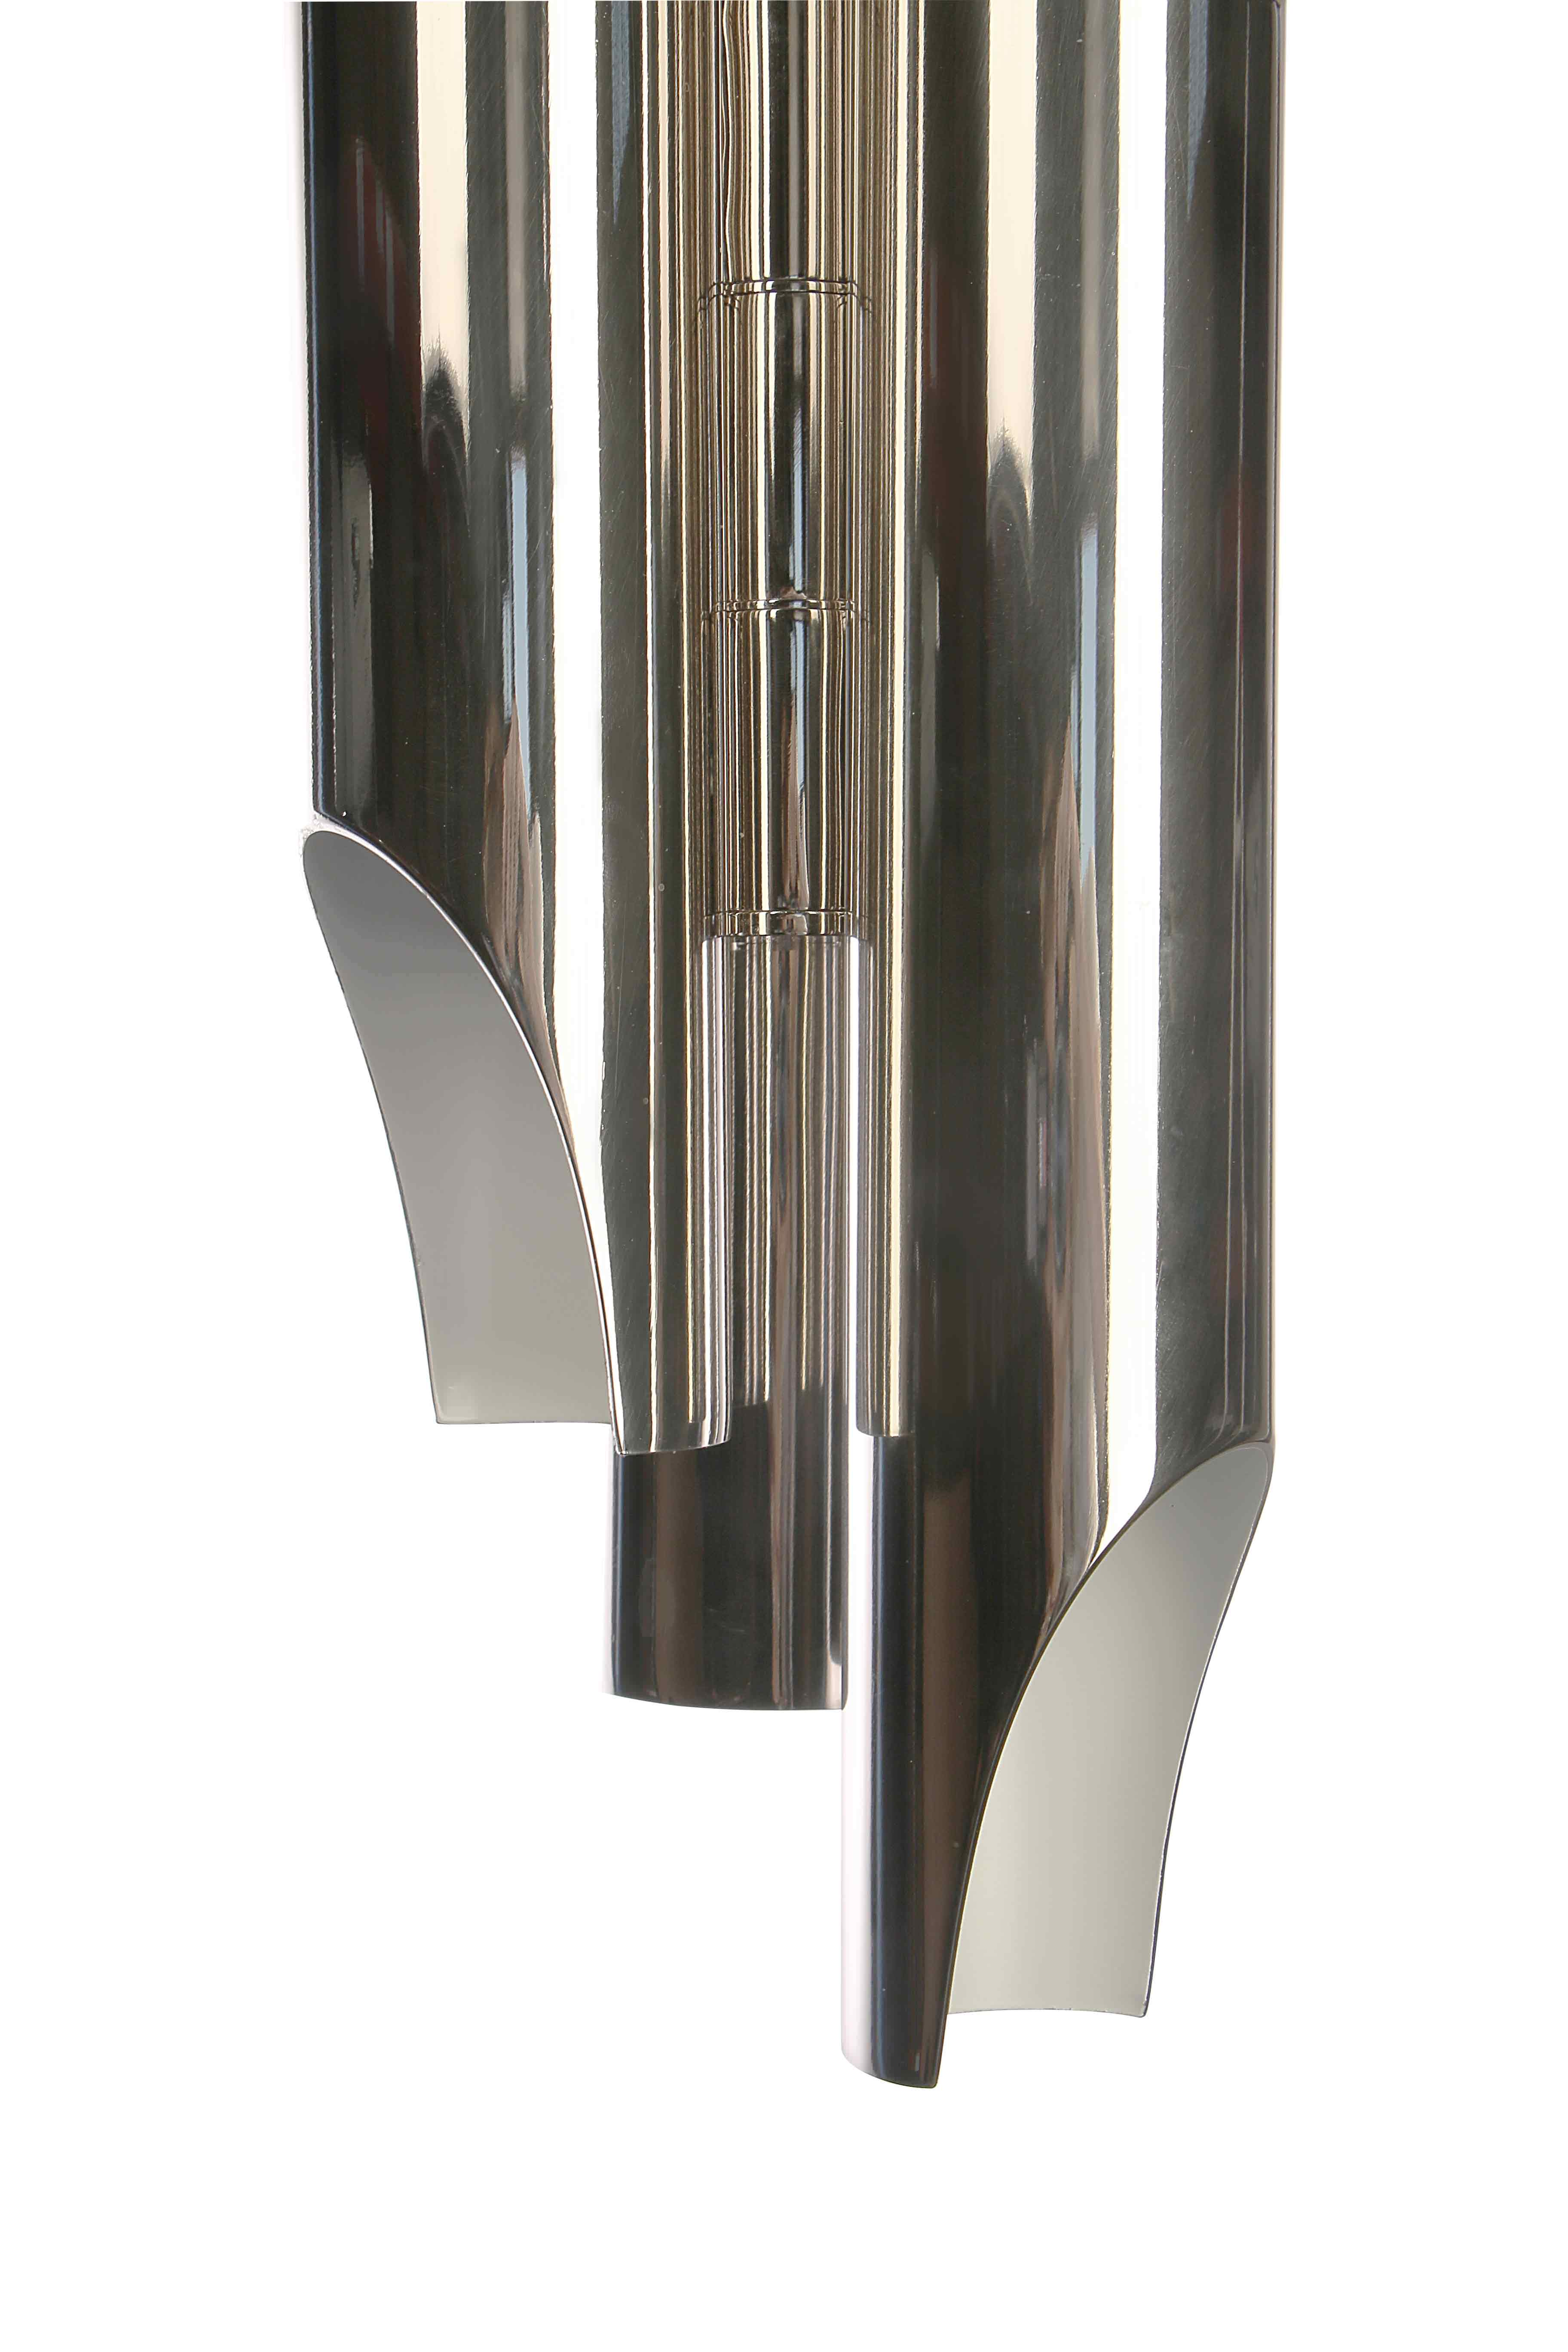 Up to 5 tubes and with a structure tailor-made in steel, Galliano produces a unique and gorgeous lighting effect. The contrast between the gold-plated interior finish and the (...)